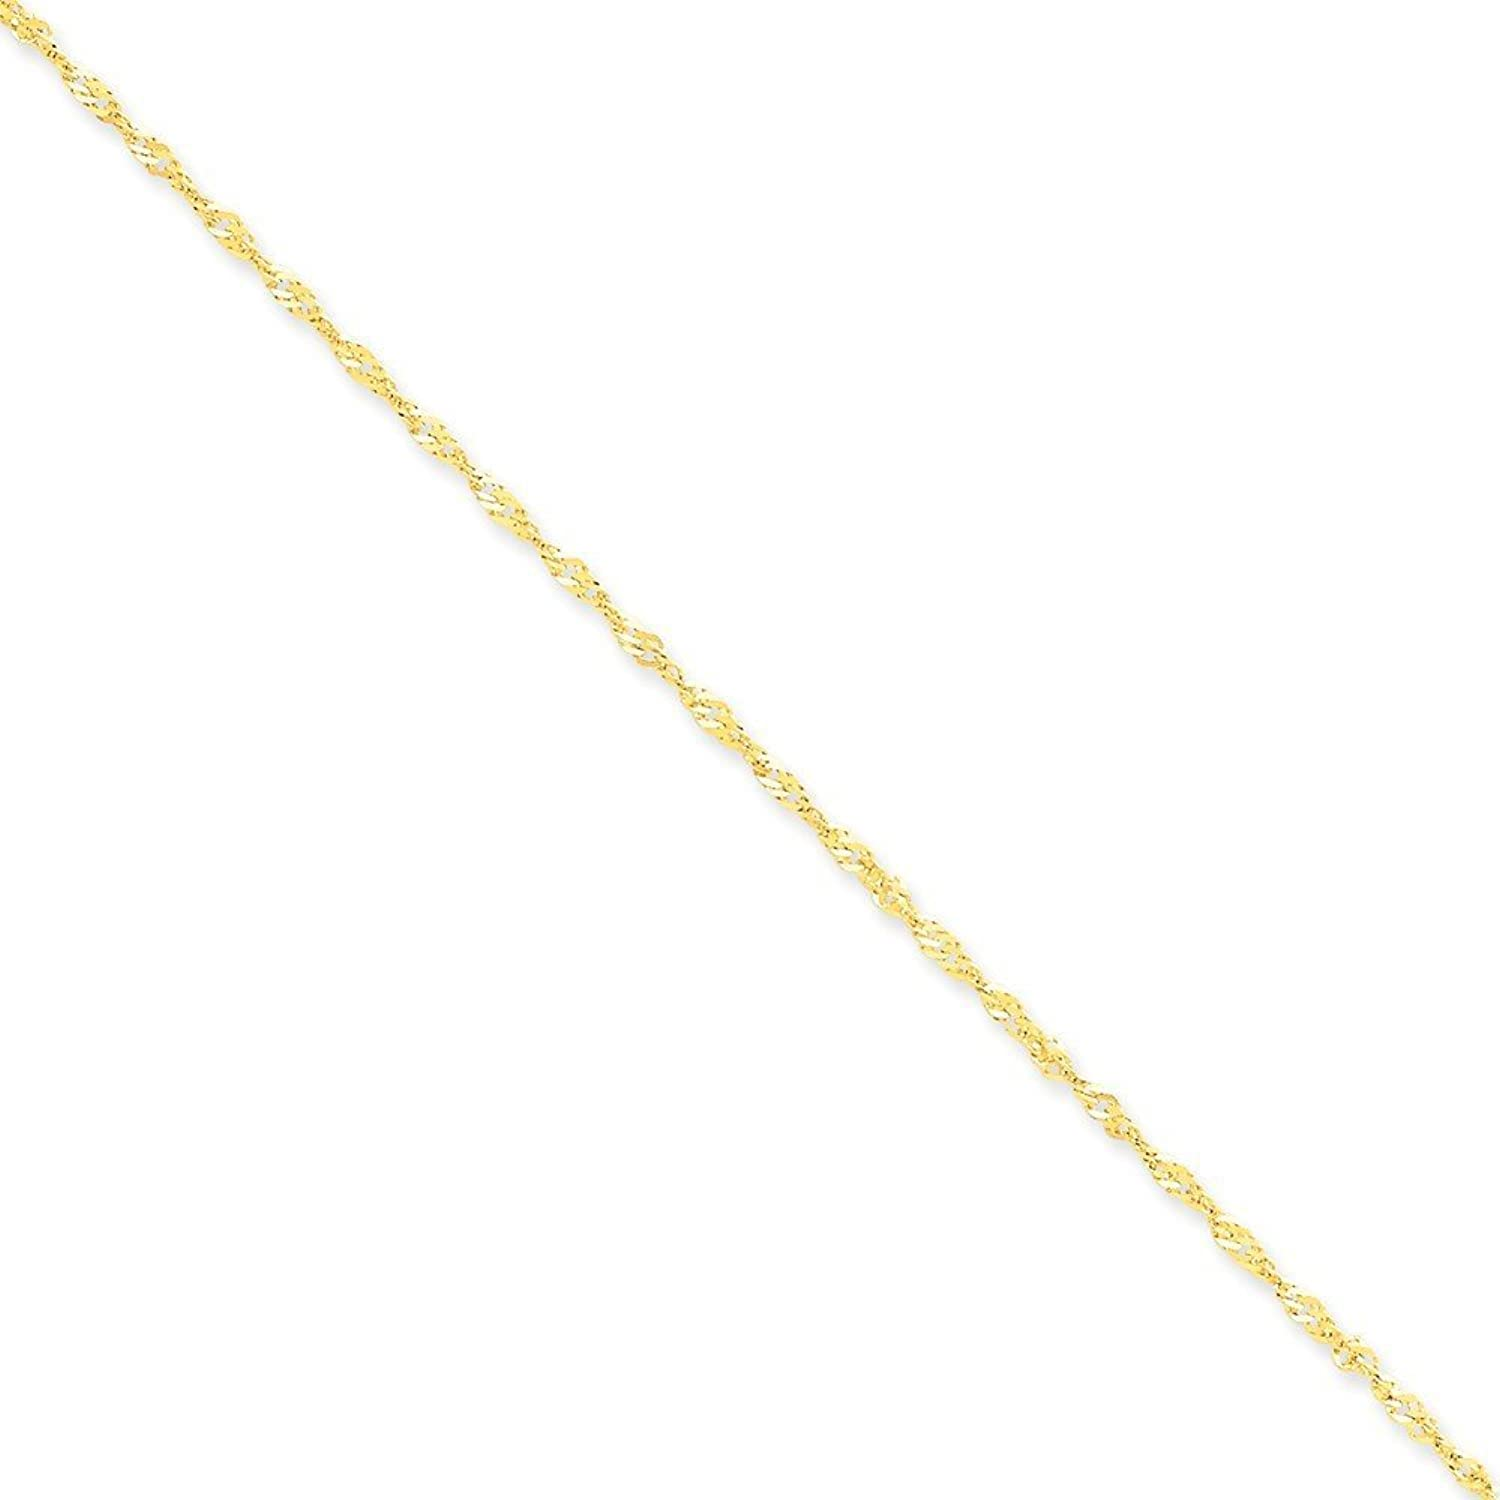 14k Gold 1.70mm Singapore Chain 9 Inches